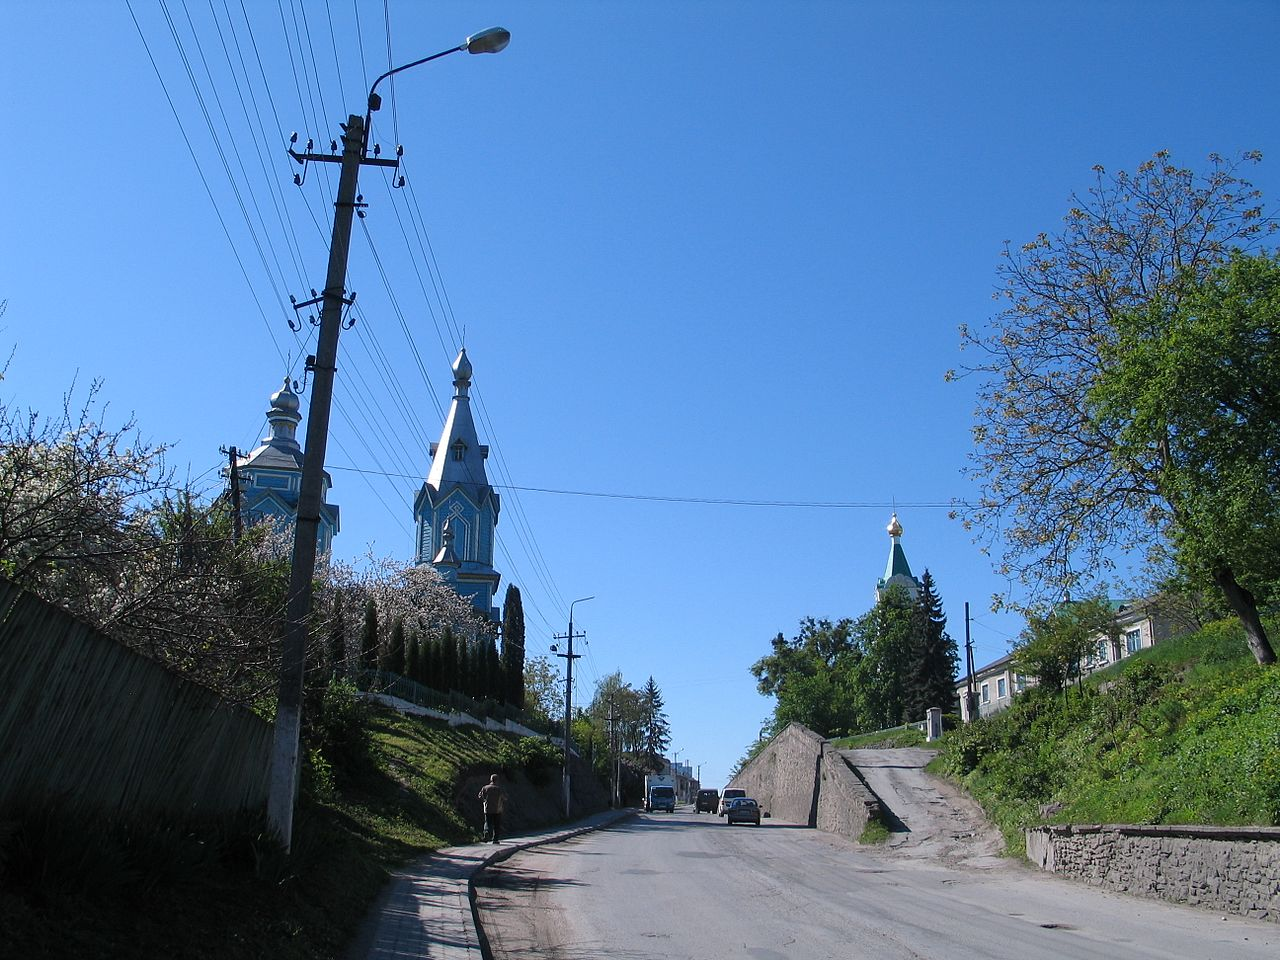 https://commons.wikimedia.org/wiki/Category:Streets_in_Kremenets#/media/File:Kremenets,_Shevchenka_street.JPG